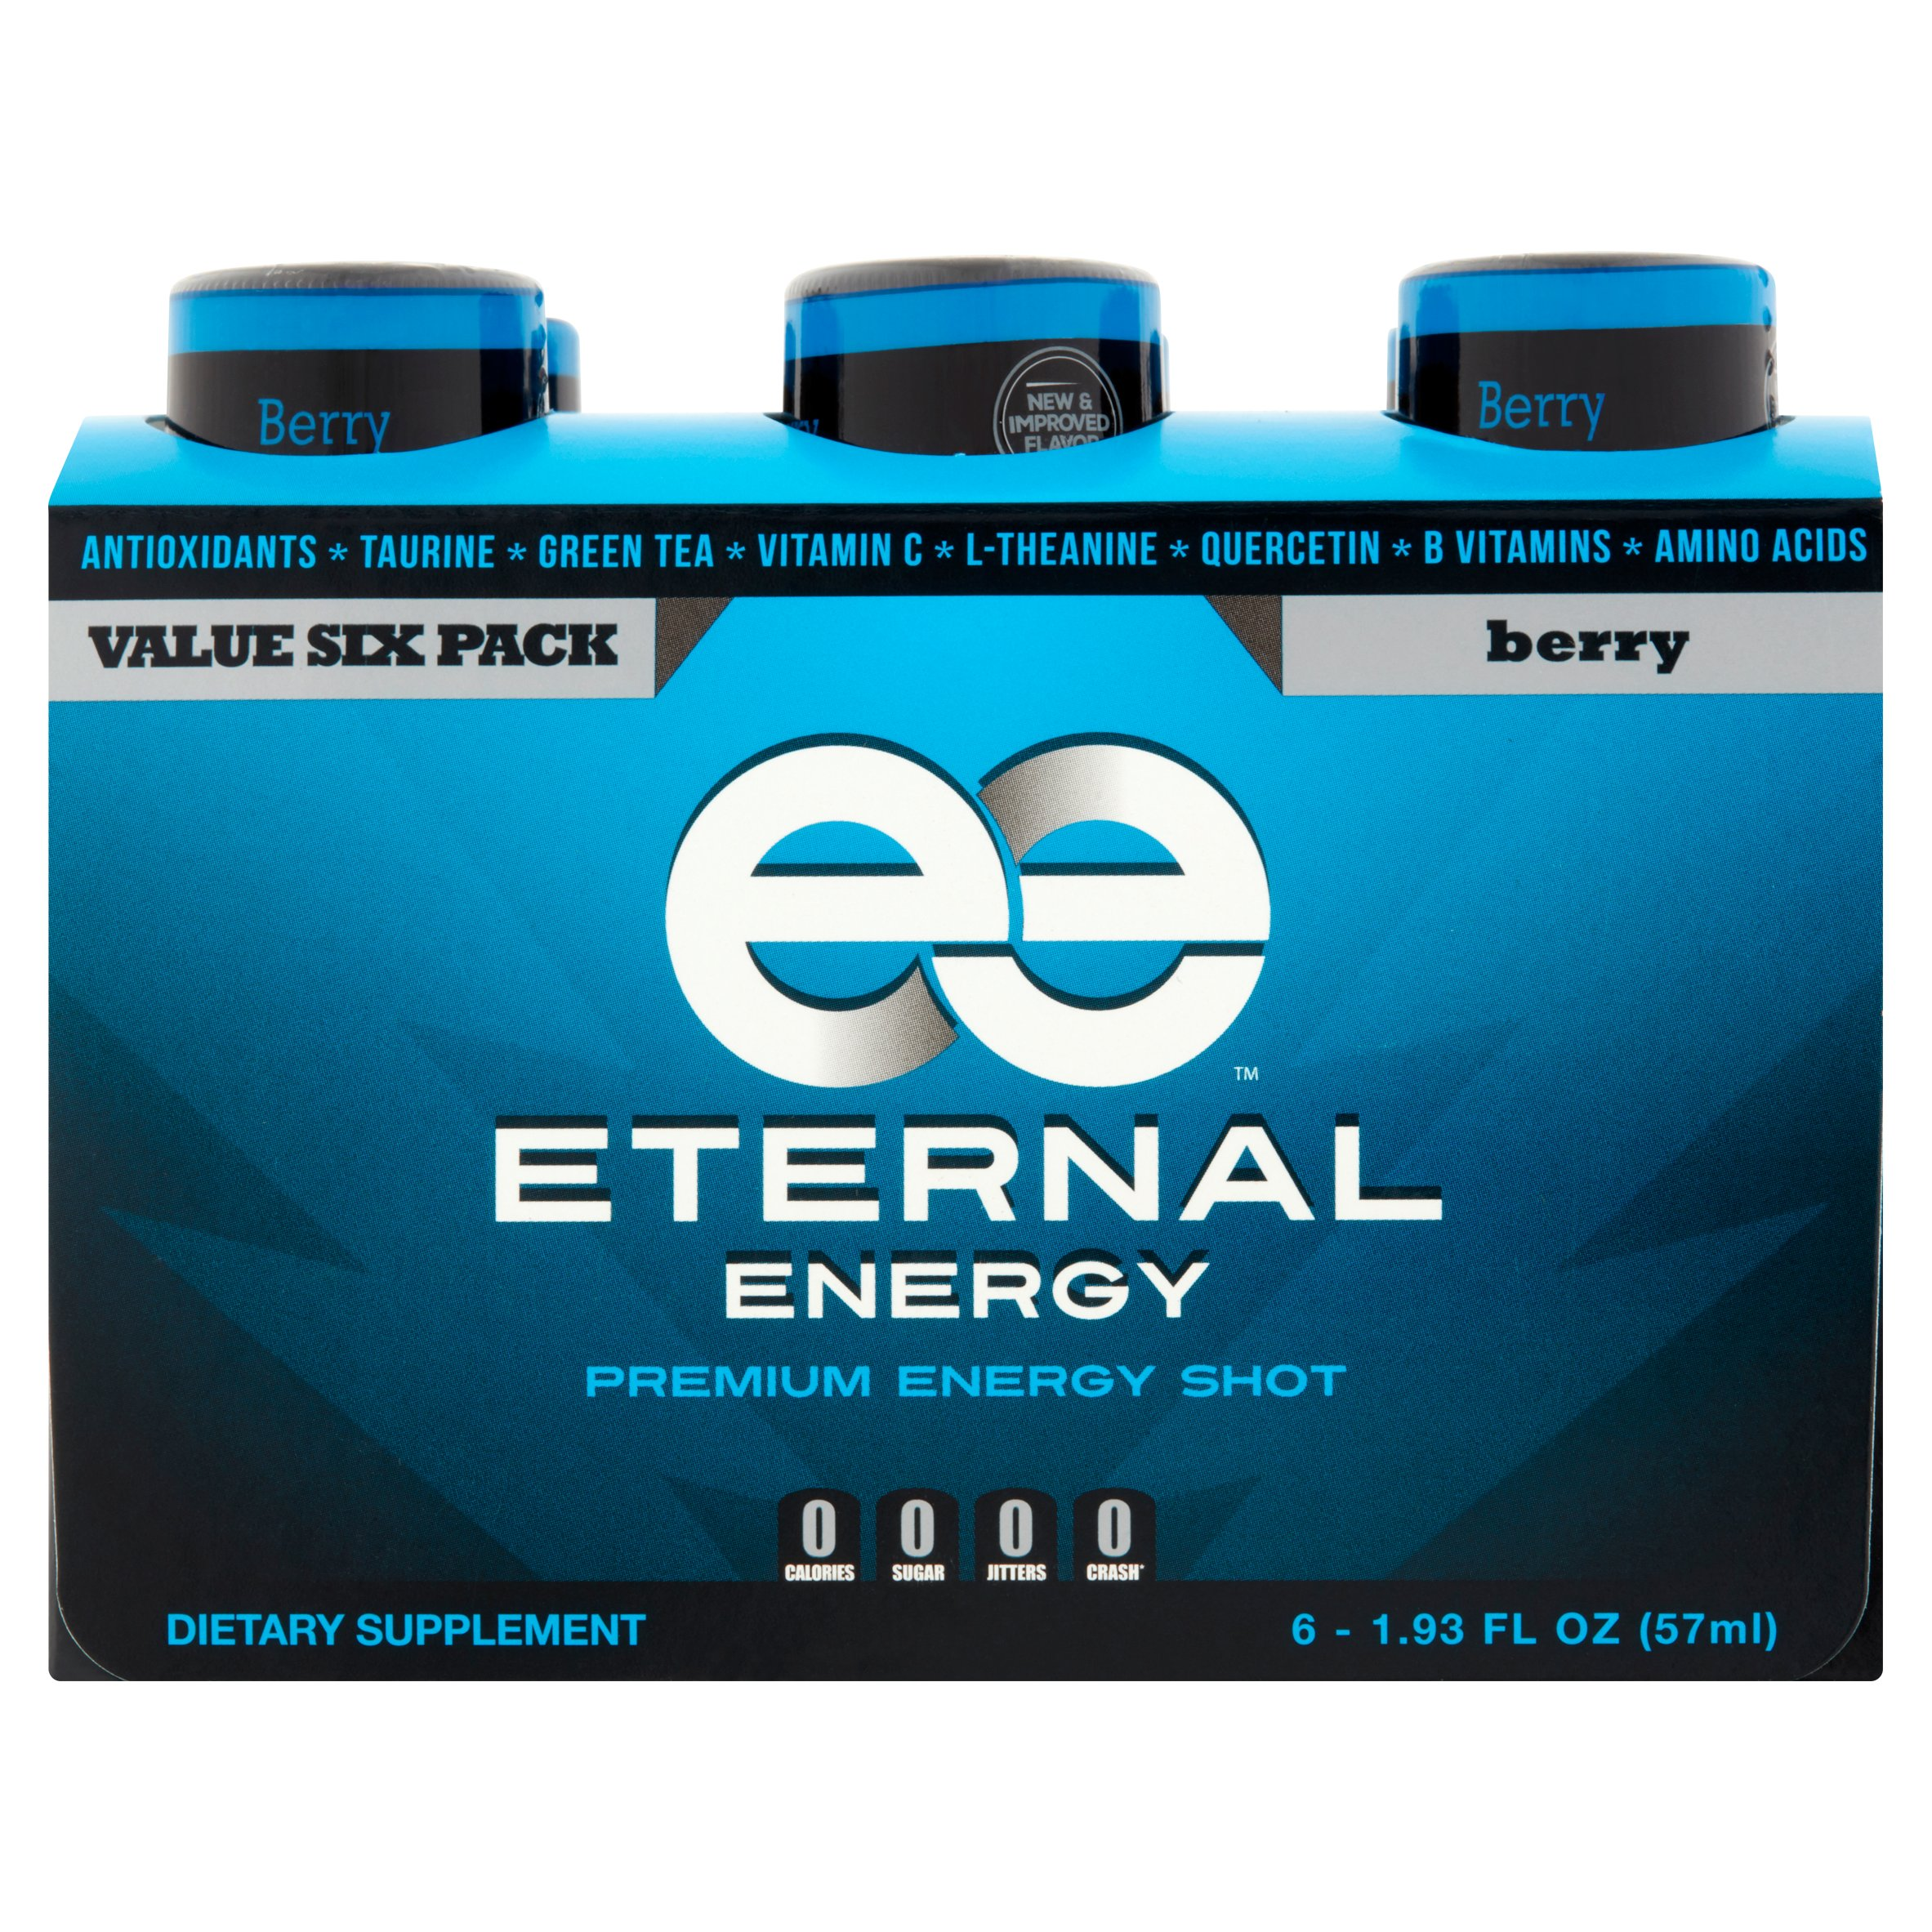 Eternal Energy Premium Energy Shot, Berry, 1.93 Fl Oz, 6 Ct